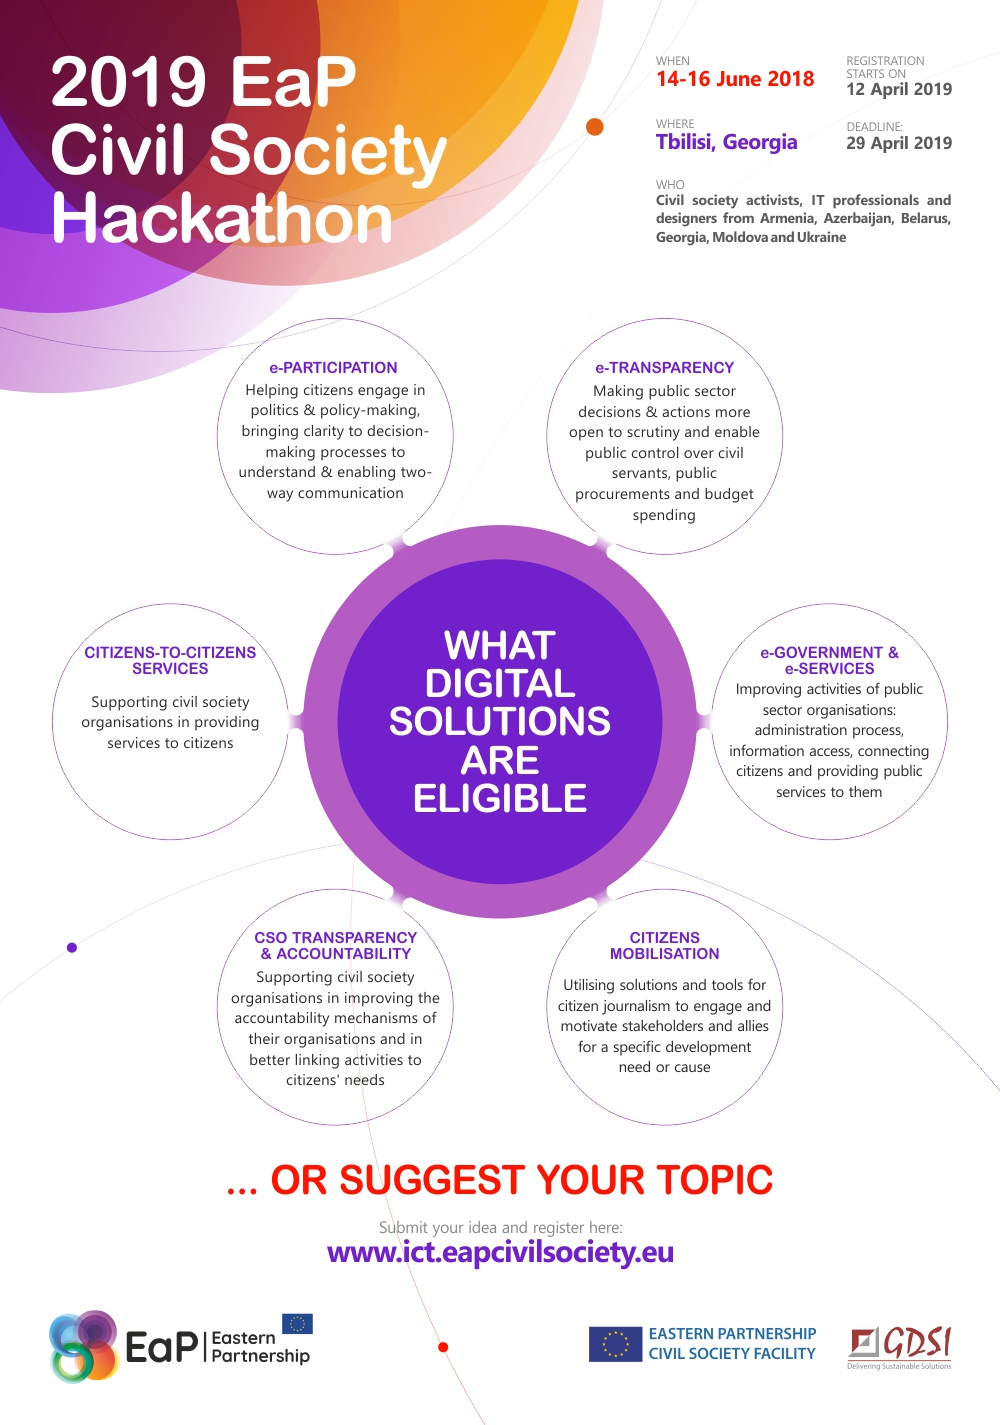 2019 EaP Civil Society Hackathon: What Digital Solutions are